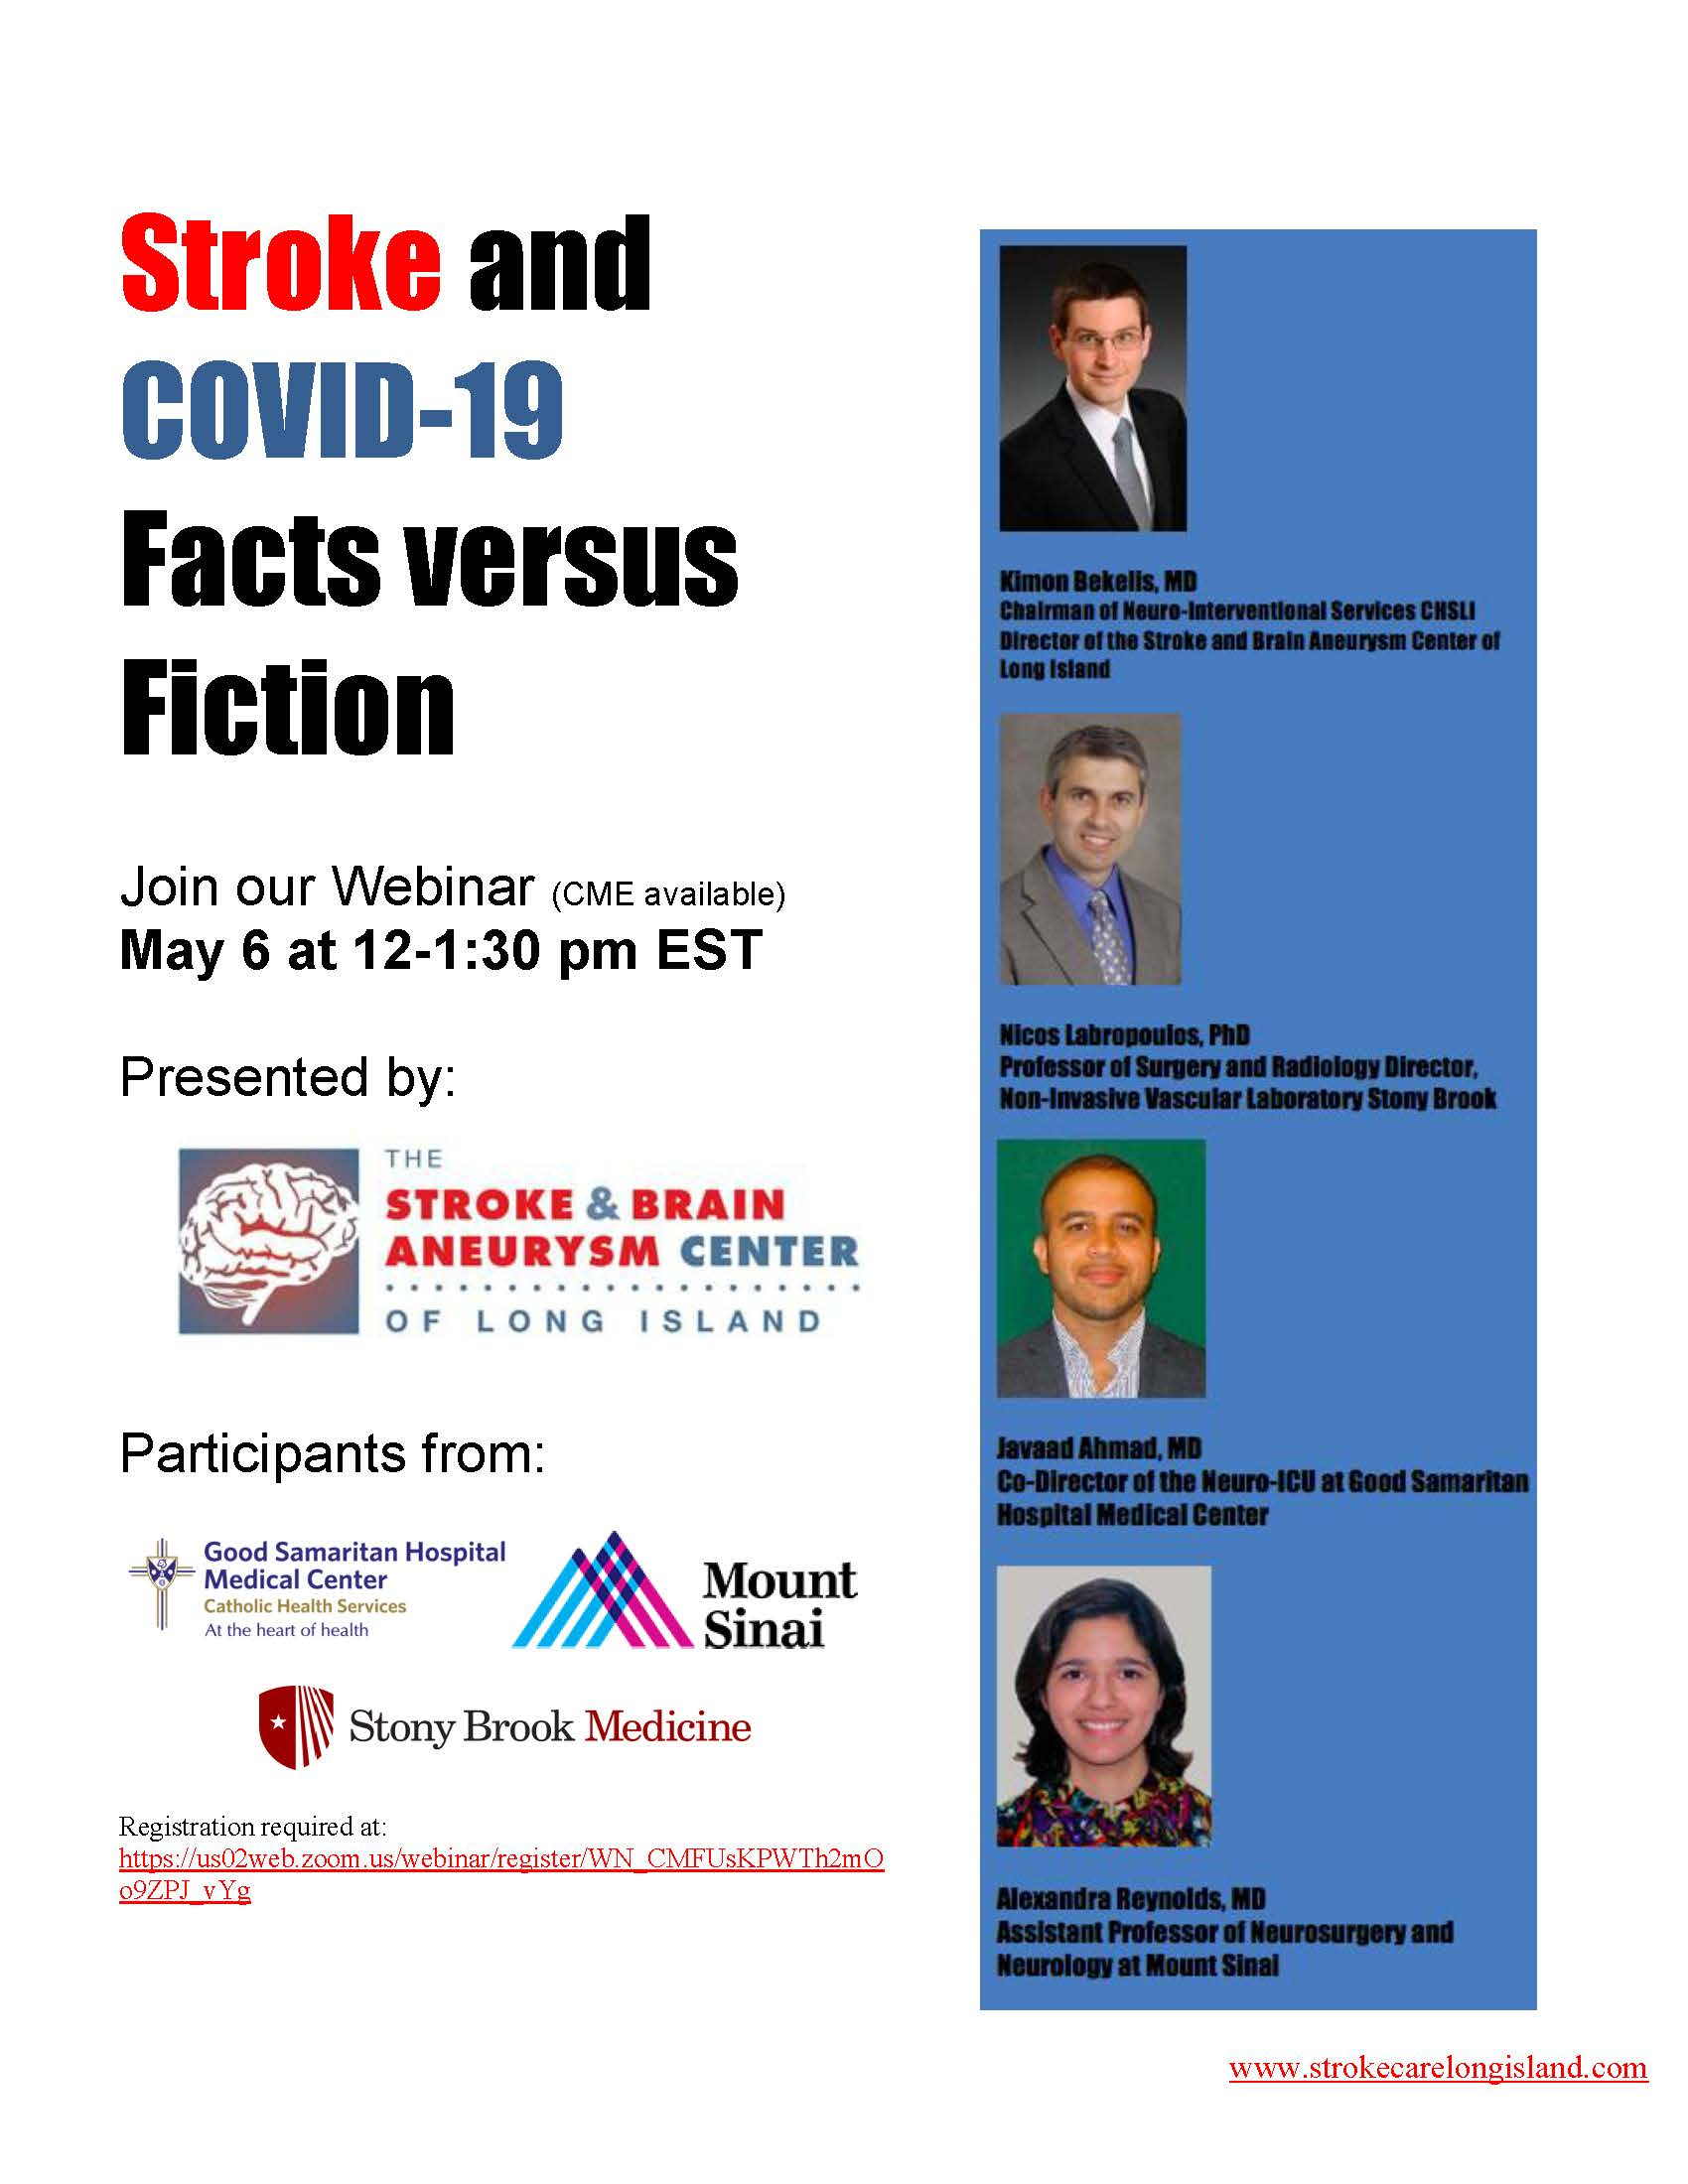 COVID-19 and Stroke: Facts versus Fiction